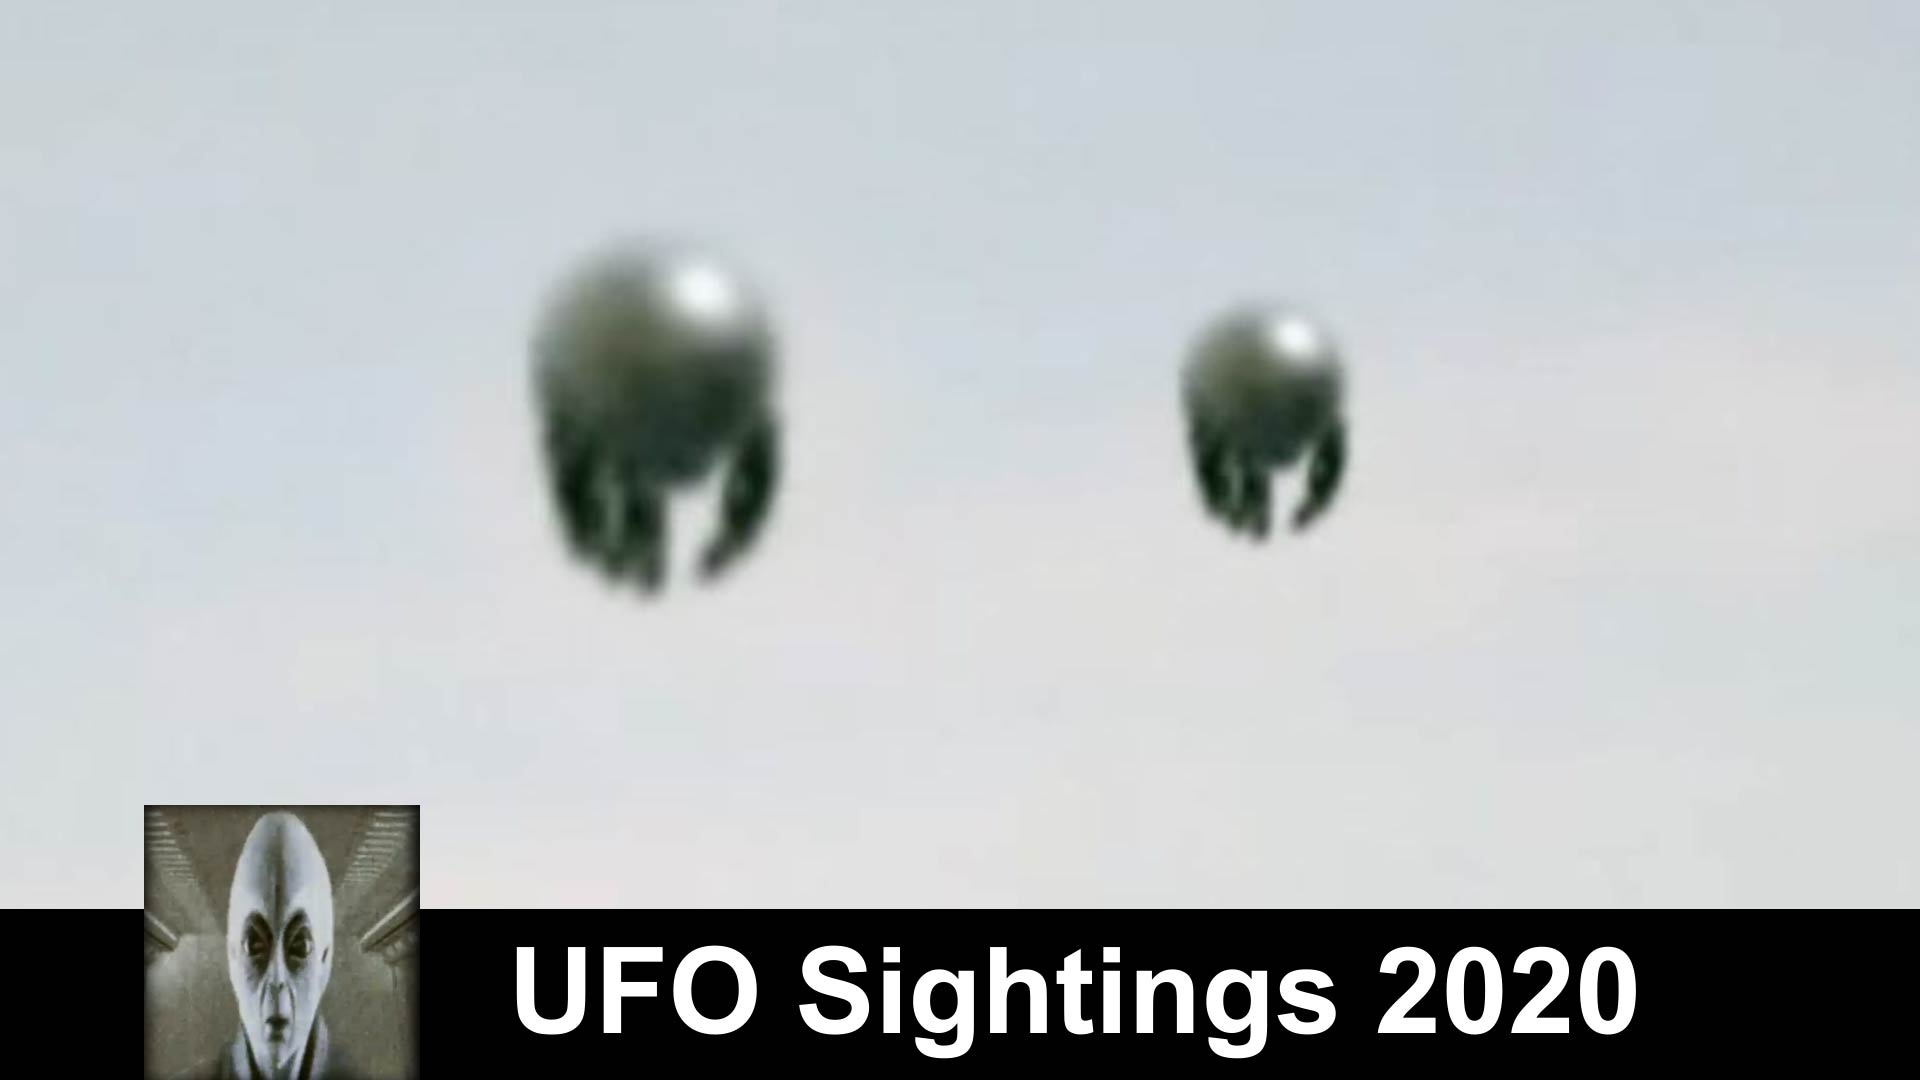 UFO Sightings May 2020 YOU HAVE TO SEE THIS